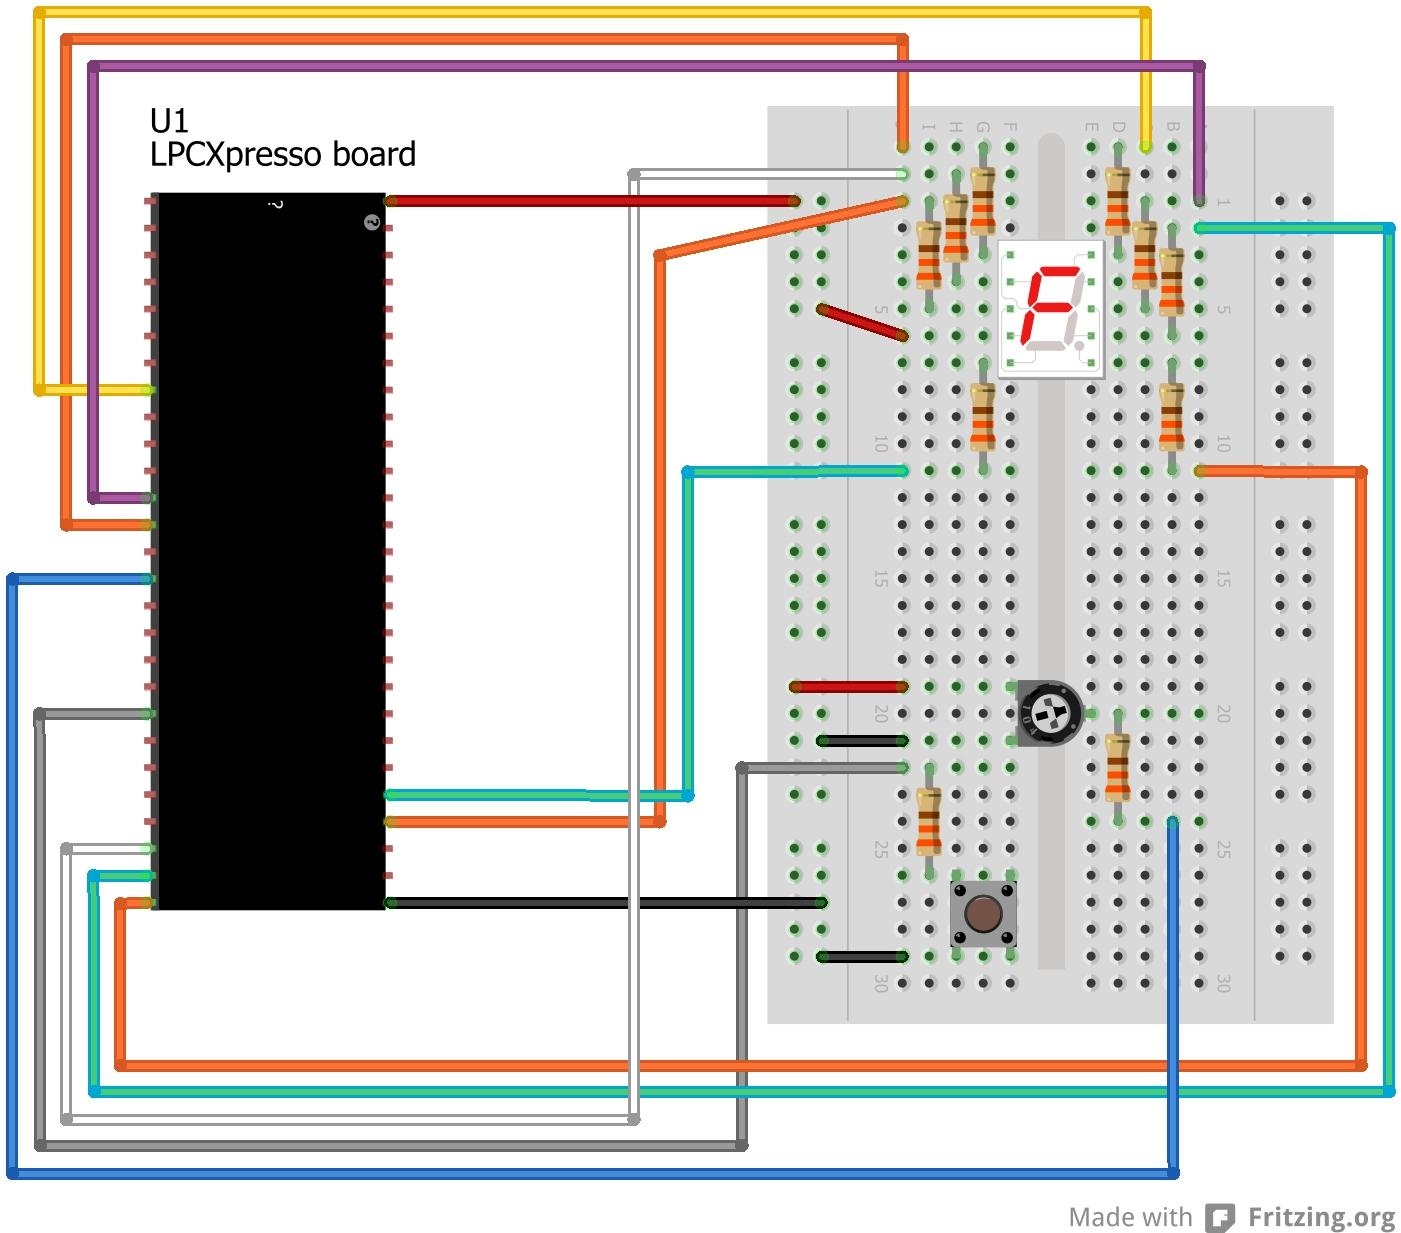 Lpcxpresso Experiment Kit User S Guide Pdf Circuit Diagram Of 7segment Display Interfacing To Arm Cortex M0 Page 65 Figure 36 Breadboard Connections For 7